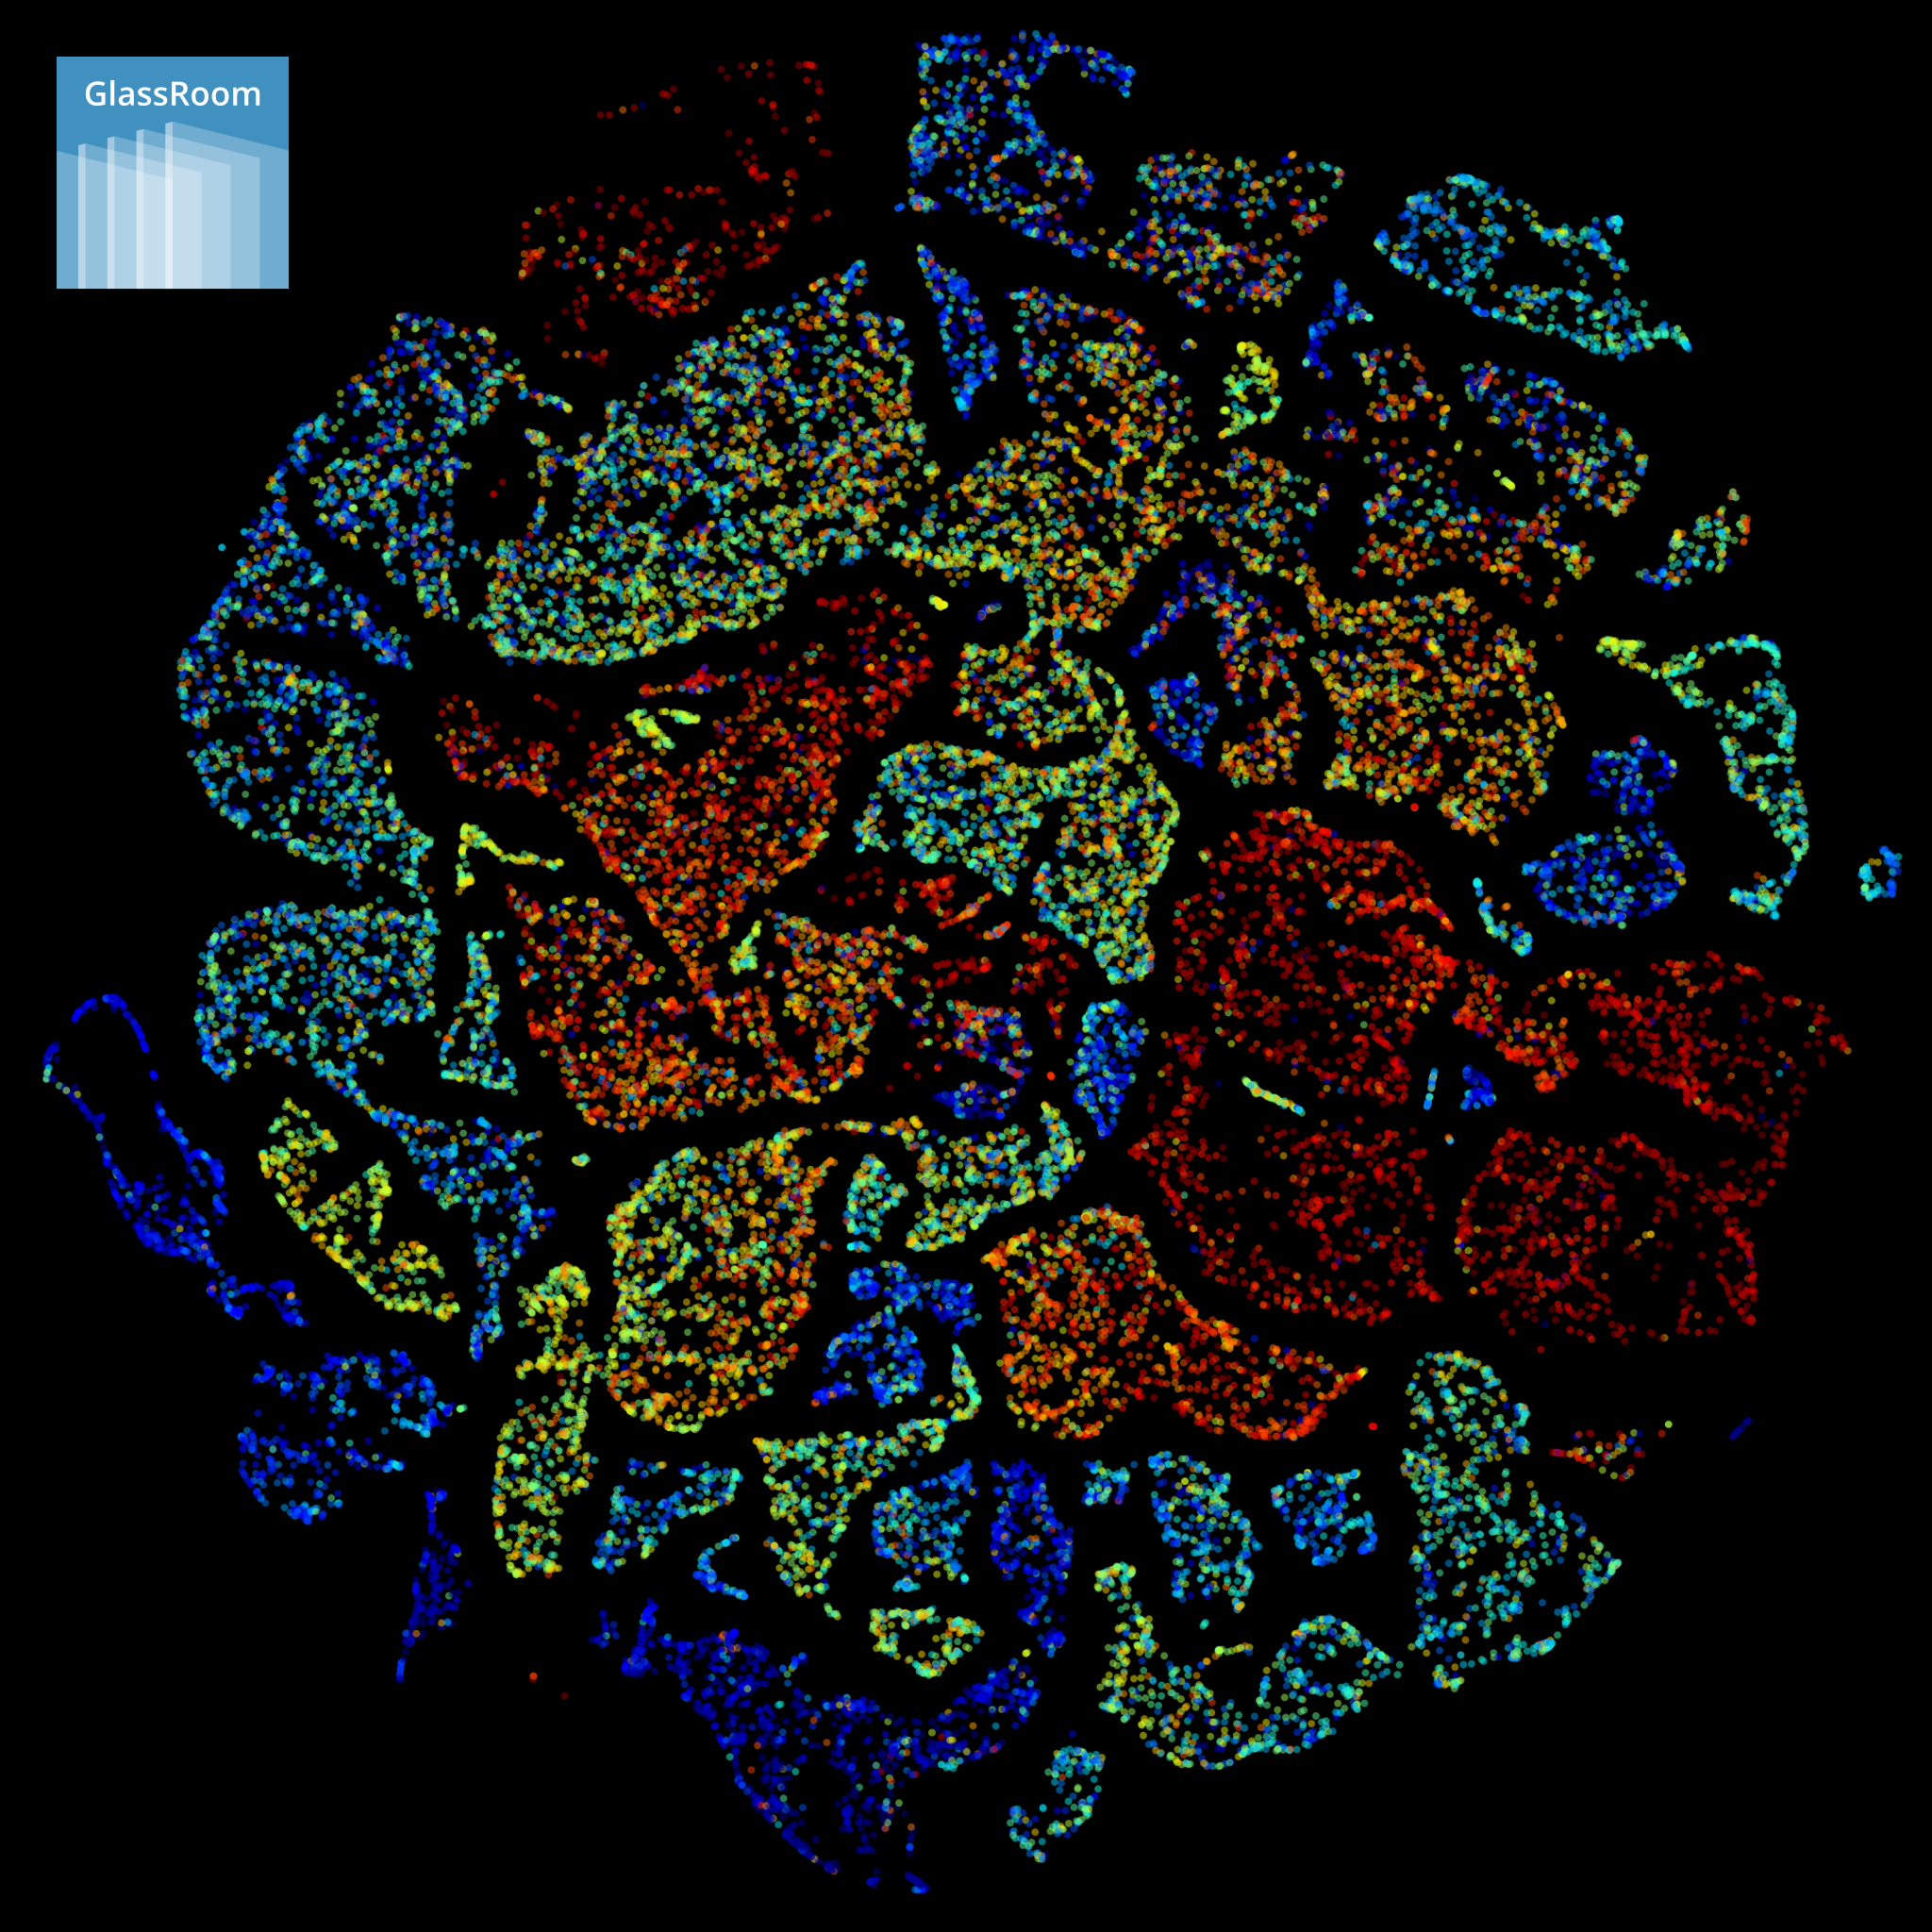 """Each point in this visualization of """"deep representations"""" is one public US company evaluated on a reporting date by Graham's deep learning system, in this case spanning a five-year period. Each deep representation is a high-dimensional vector of floating-point numbers, which we map to two dimensions via the  Barnes-Hut variant of the t-SNE visualization algorithm . The more similar Graham considers two point-in-time companies, the closer their location in the space of deep representations, and the closer their location in the two-dimensional approximation shown here. Each point is colored by a normalized measure of future business profitability, ranging from dark red (most unprofitable) to dark blue (most profitable)."""